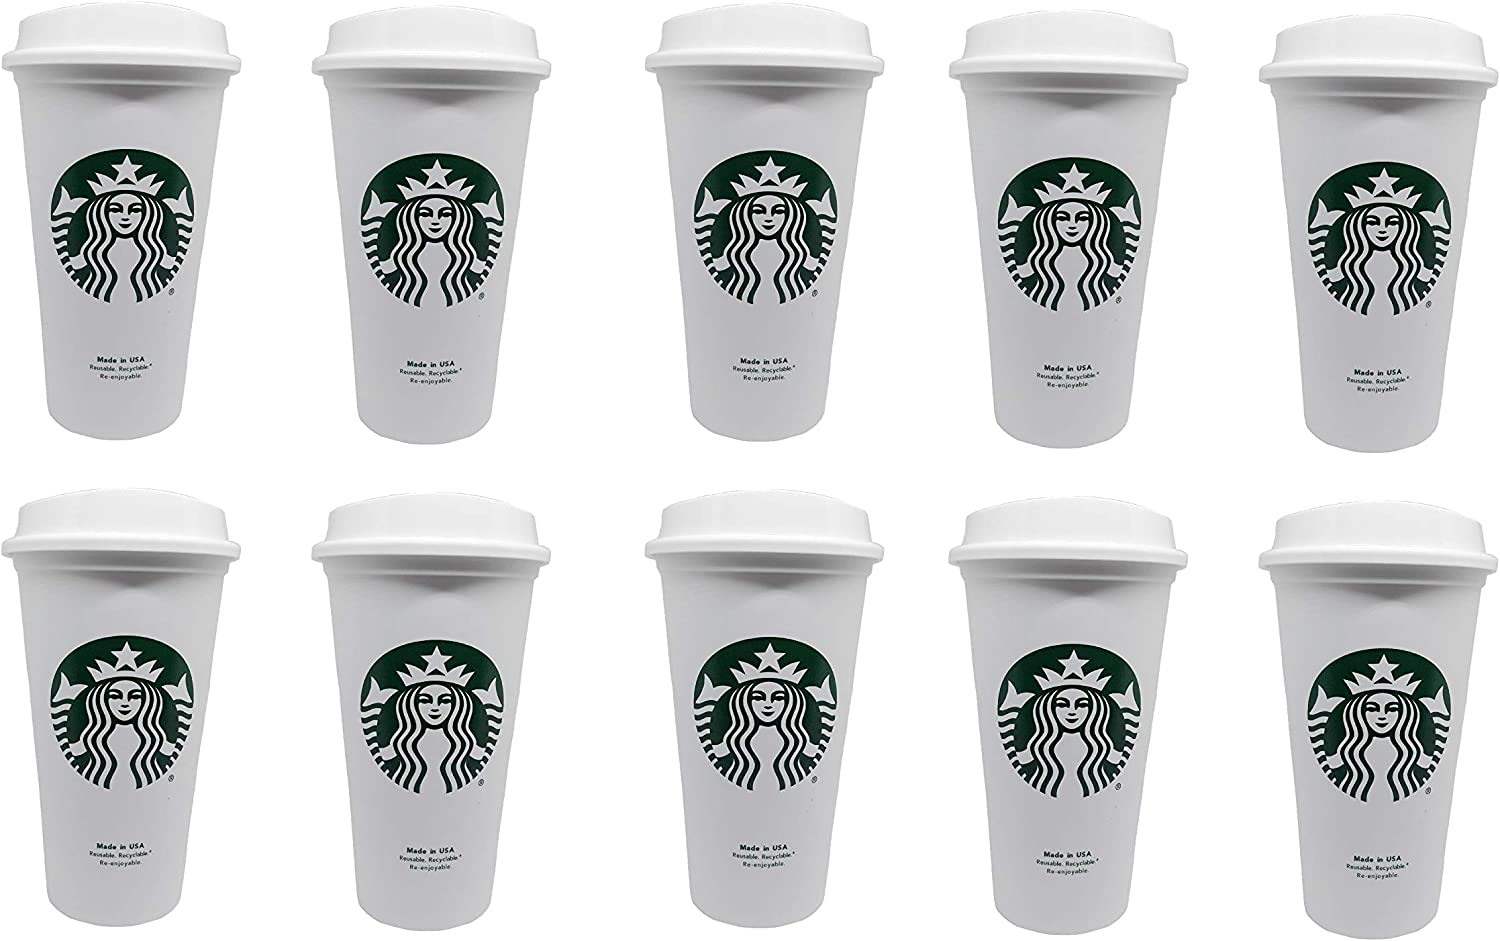 Starbucks Reusable Travel Cup To Go Coffee Cup (Grande 16 Oz) (10pack)